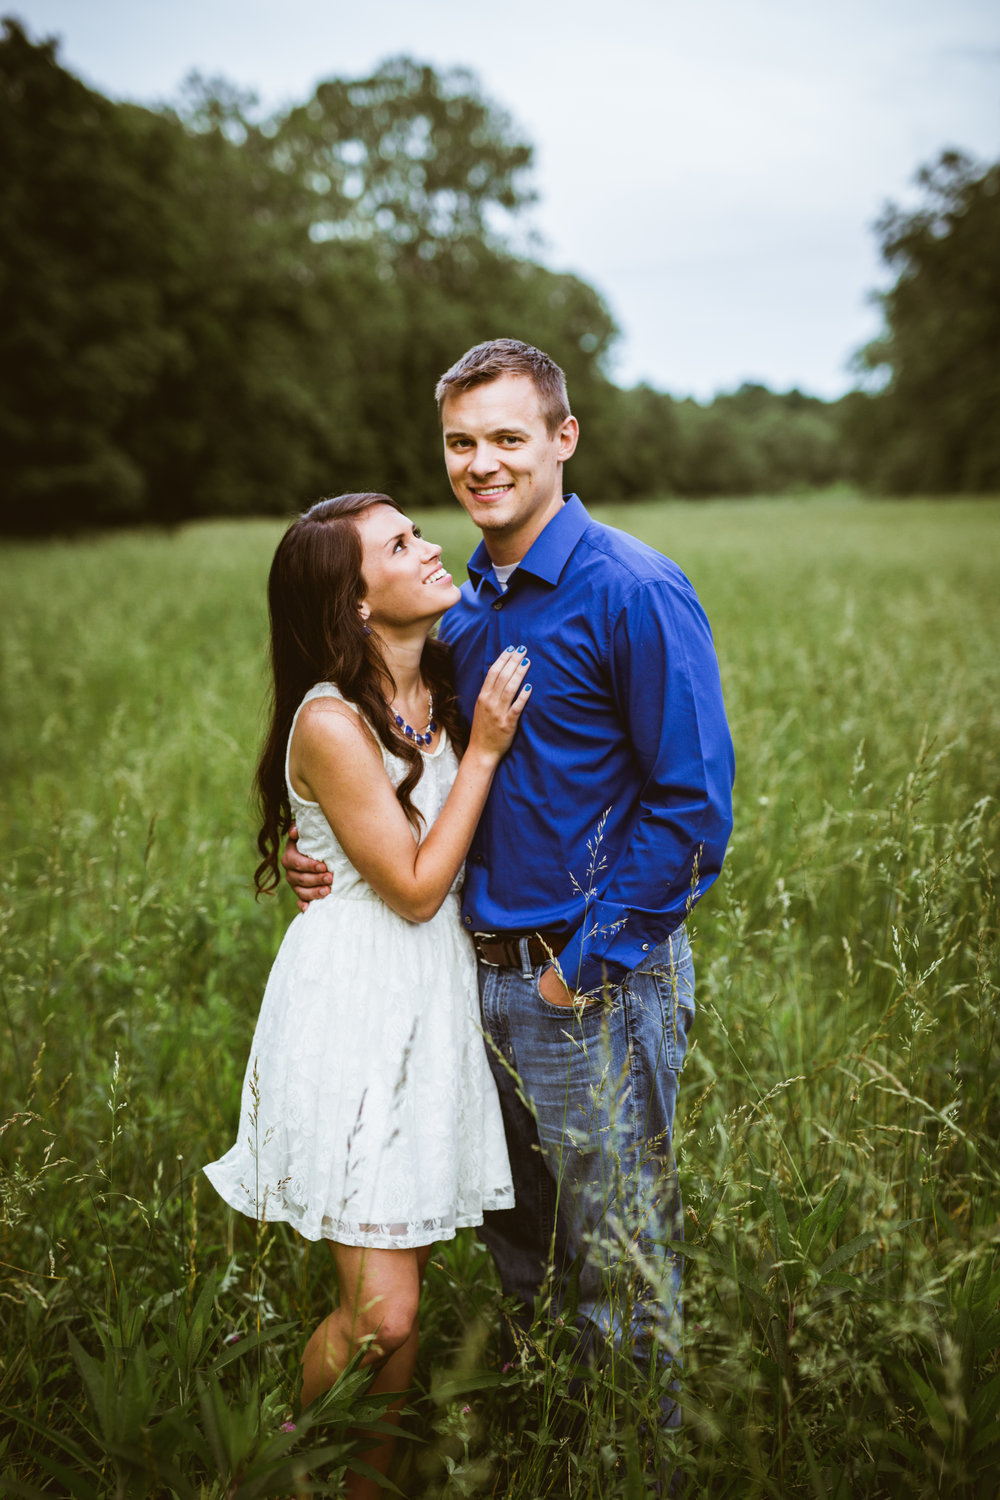 Todd-Hunt Engagement-85.jpg